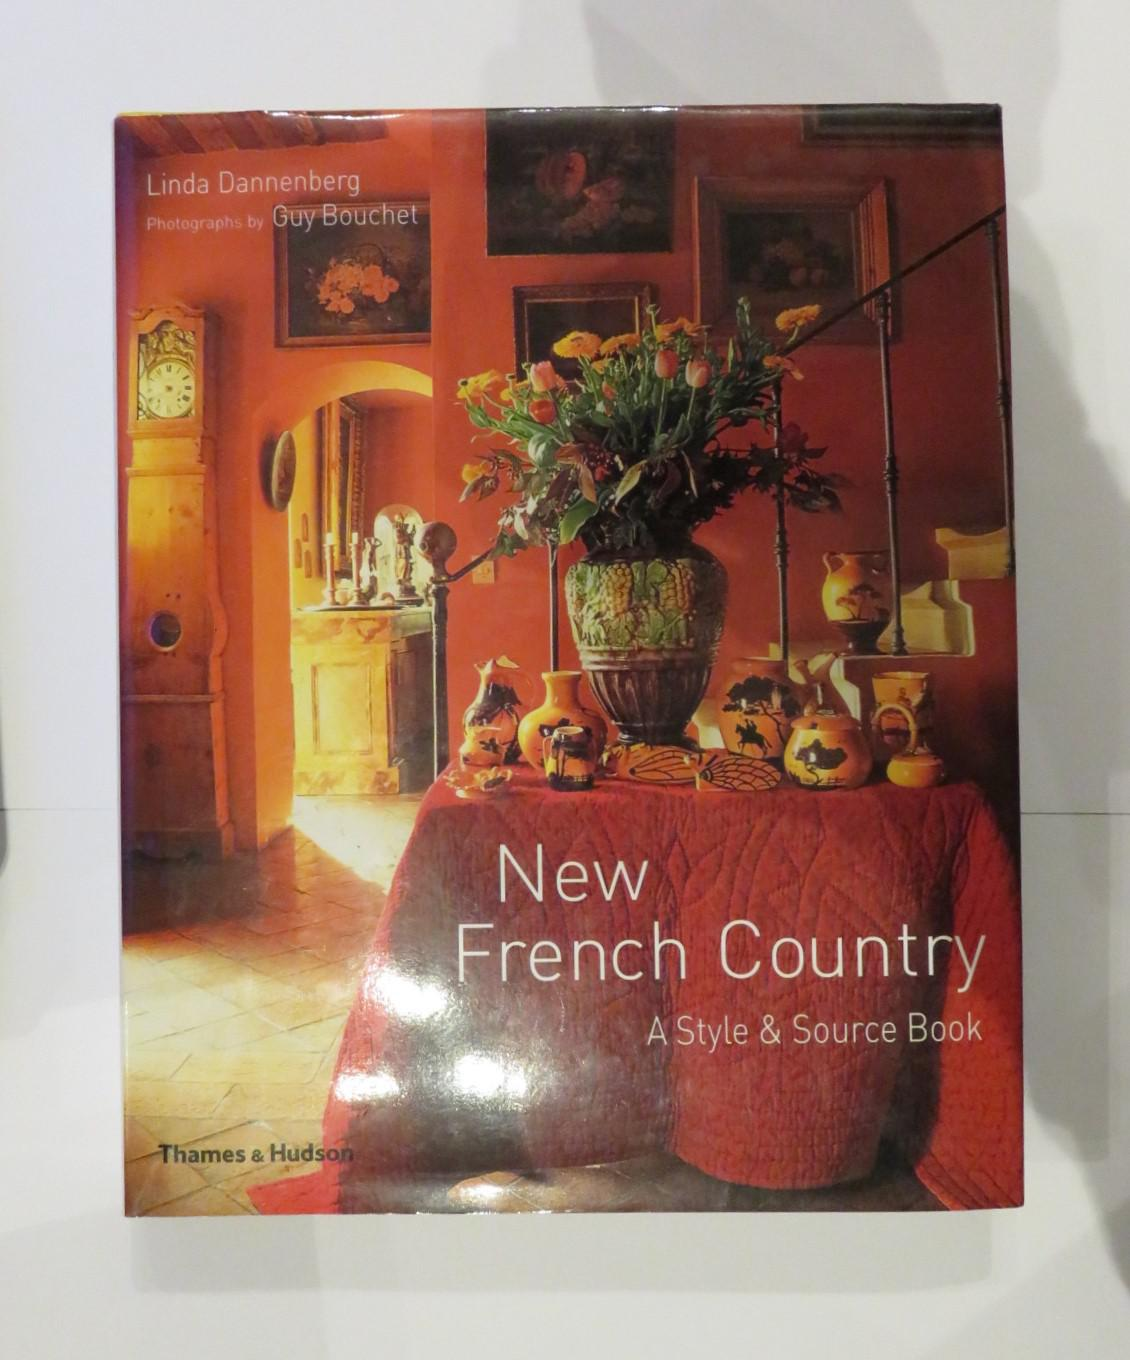 New French Country: A Style & Source Book